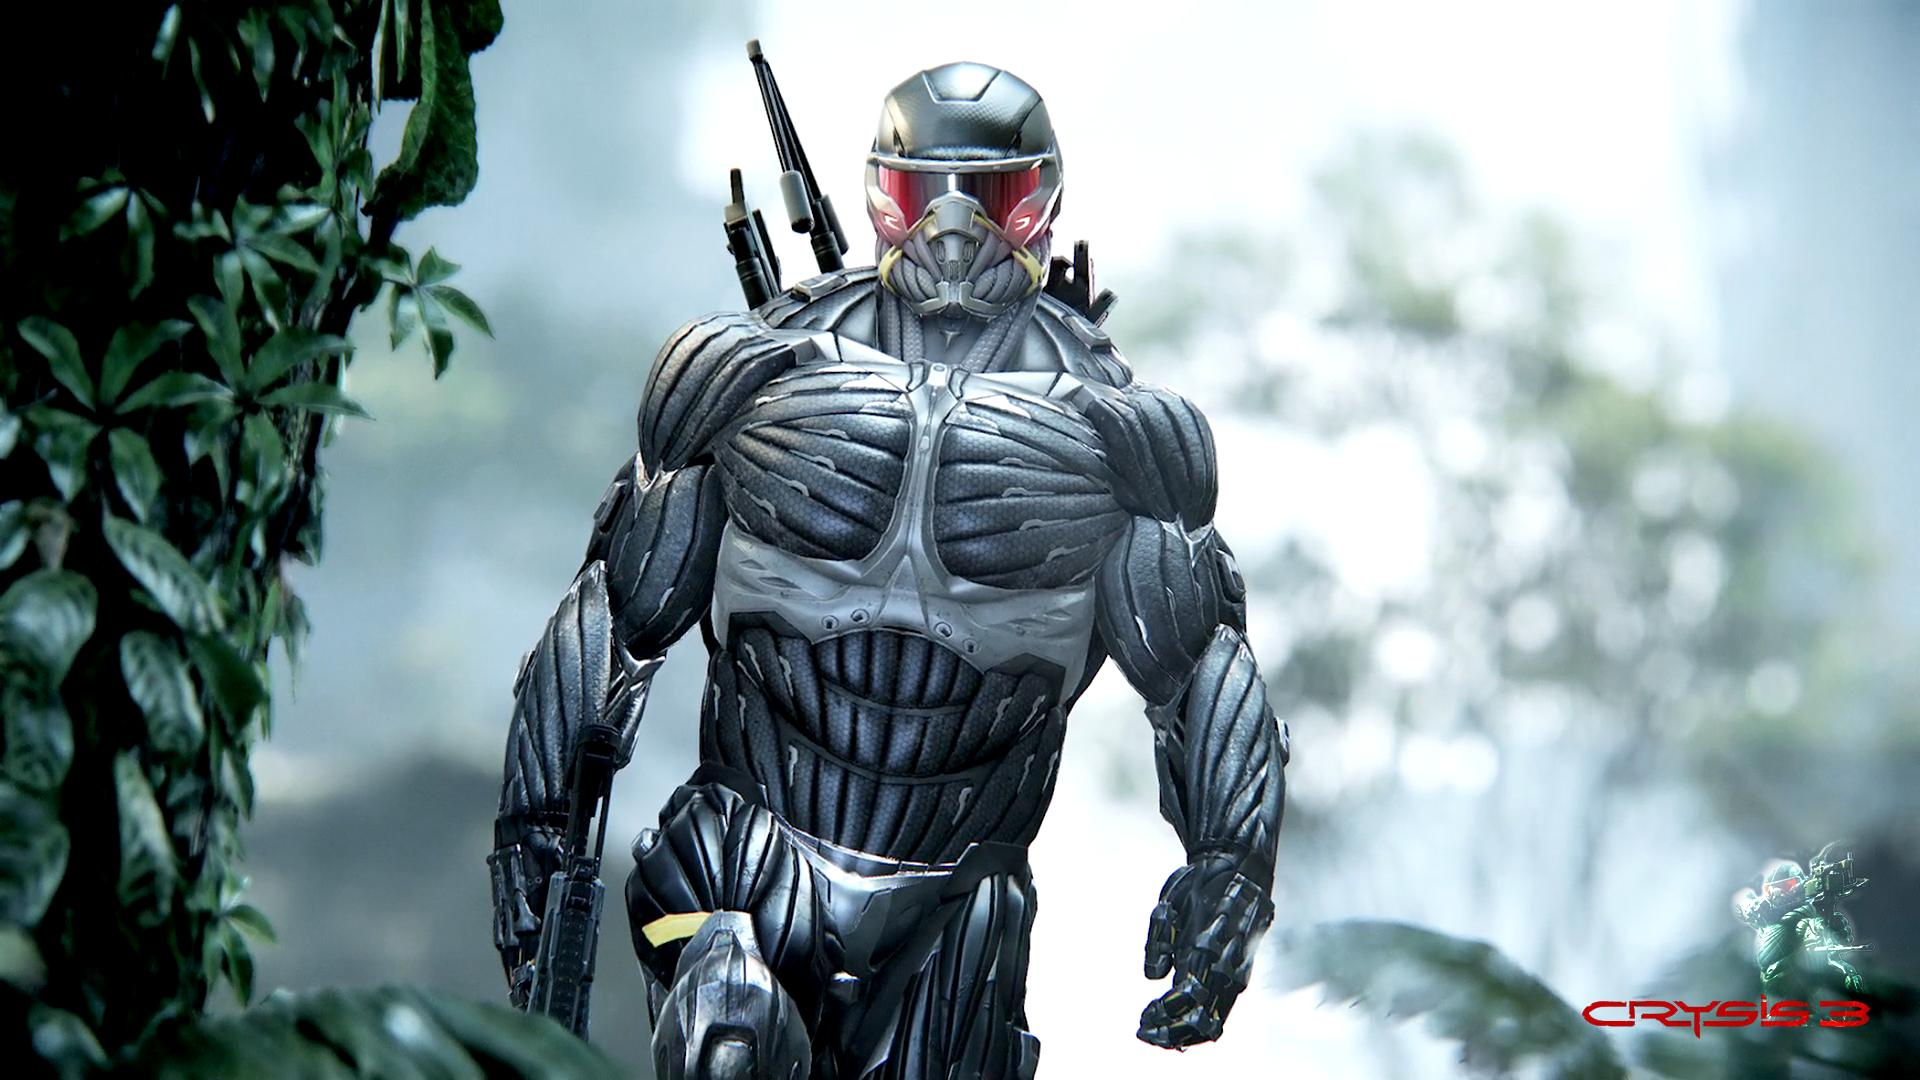 Crysis-wallpaper-wpc9203917